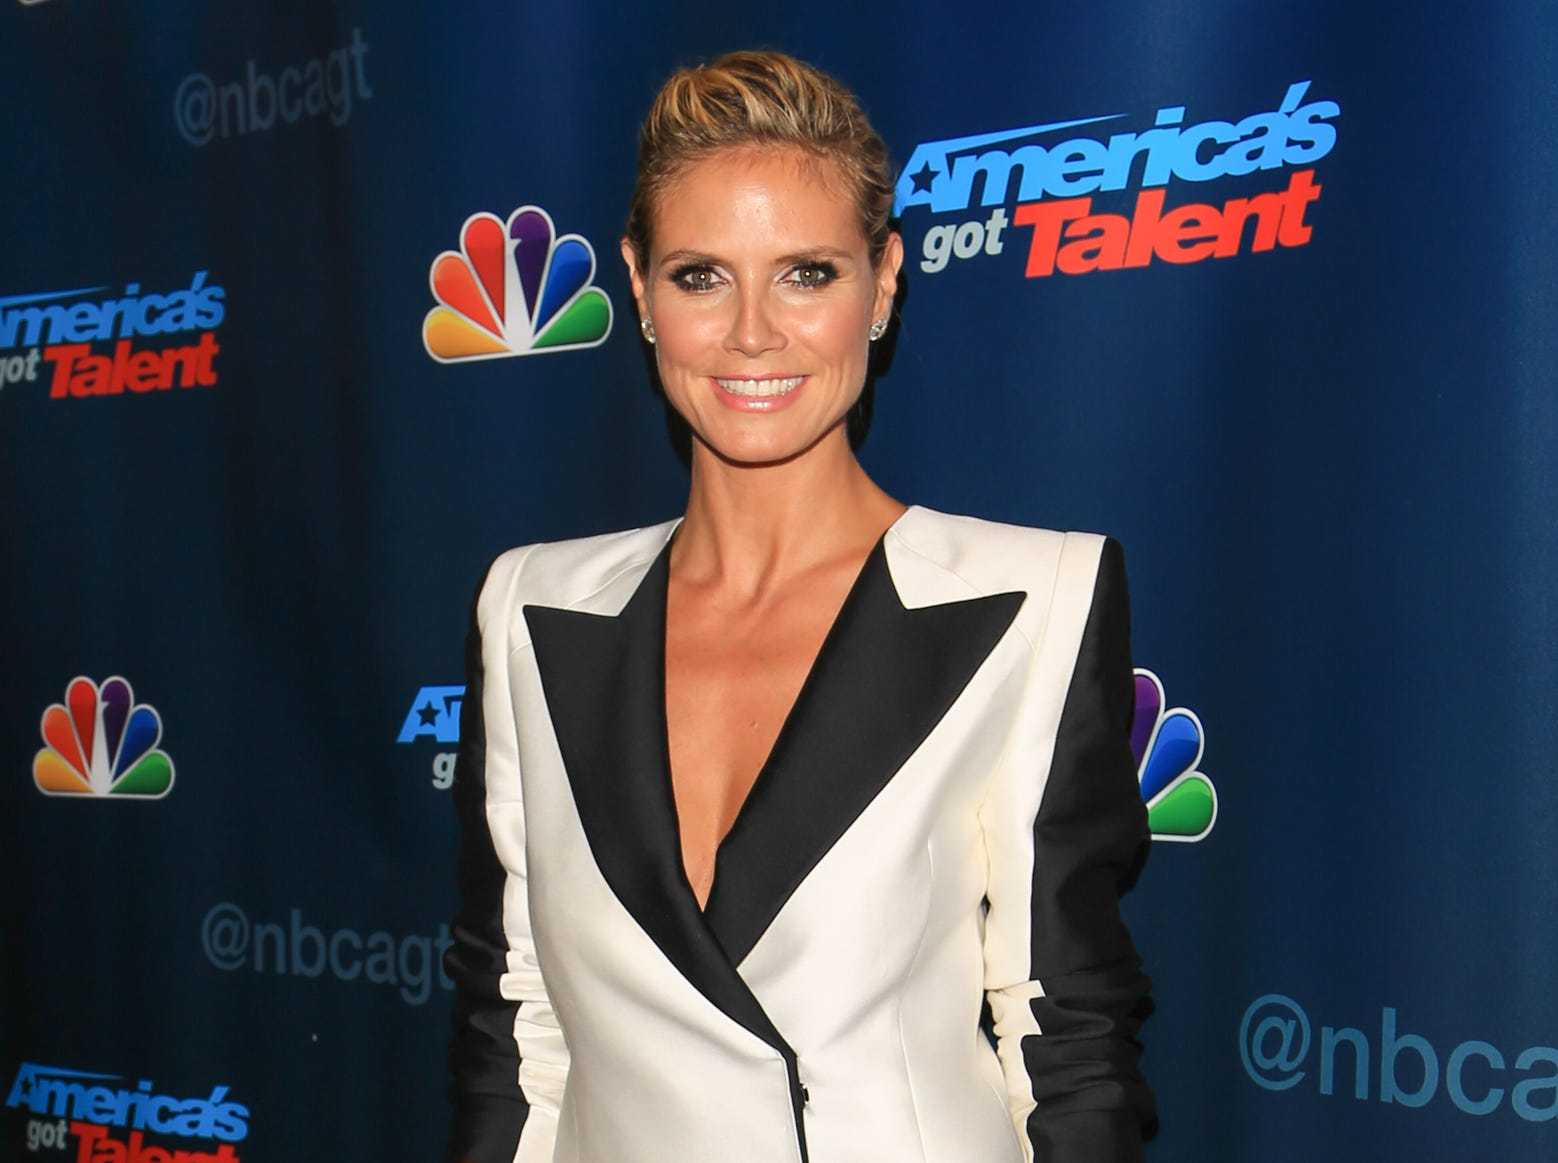 Heidi Klum cuts a stirking figure in a black and white Thomas Wylde tuxedo jacket, The Row trousers and Saint Laurent heels for her appearance on the 'America's Got Talent' Season 8 red carpet on Aug. 7 in New York.